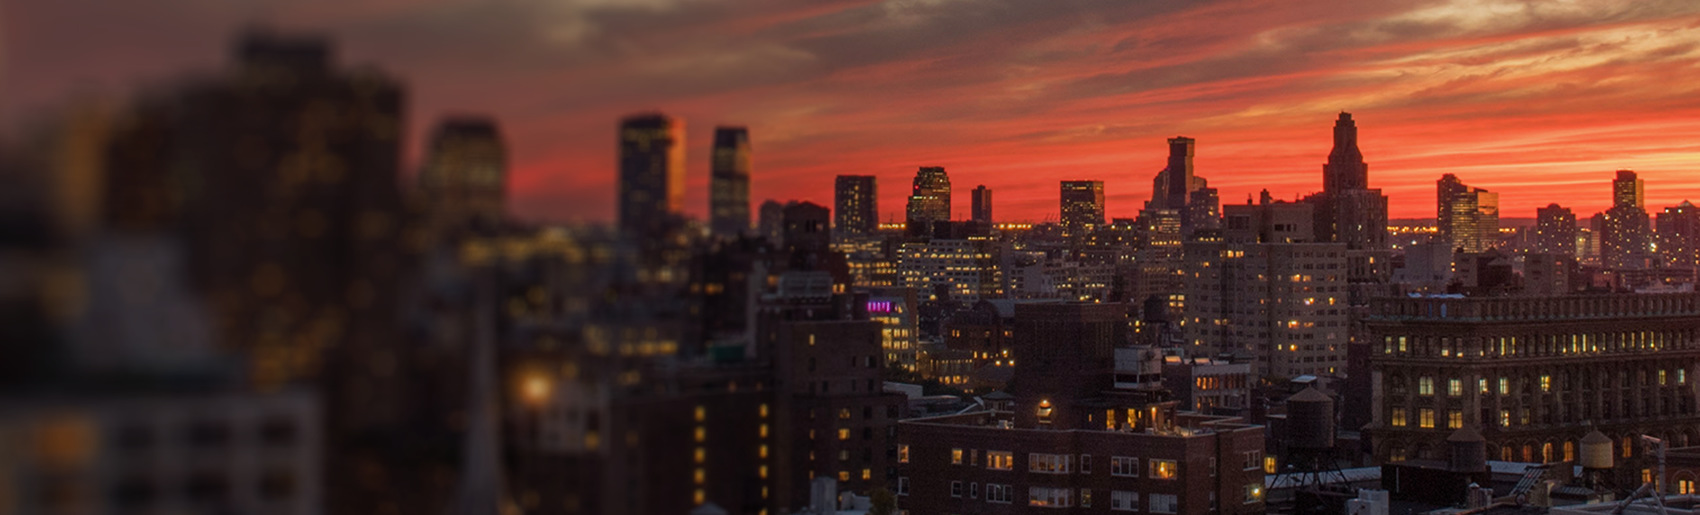 A deep red sunset over the Brooklyn cityscape.